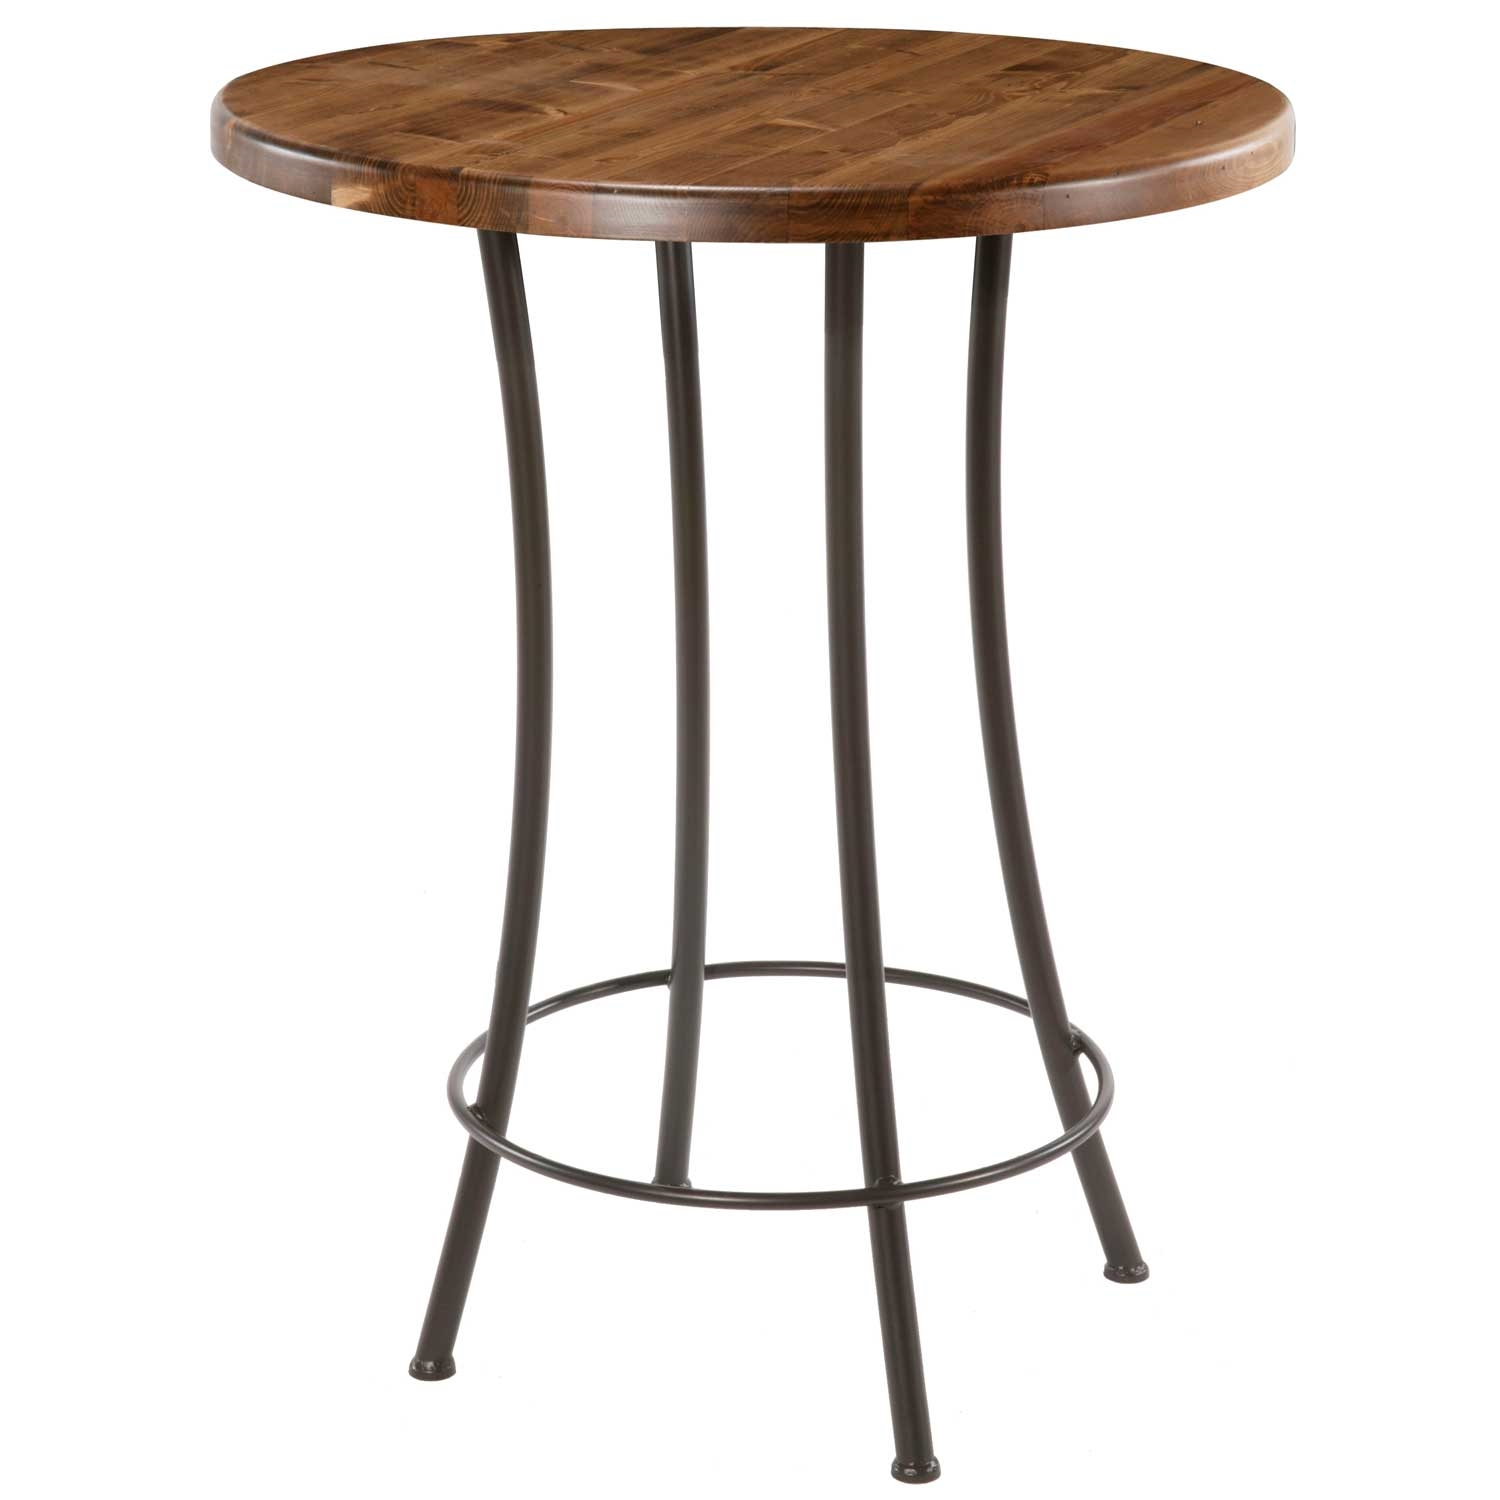 Pictured Here Is The Bistro Counter Height Table With A